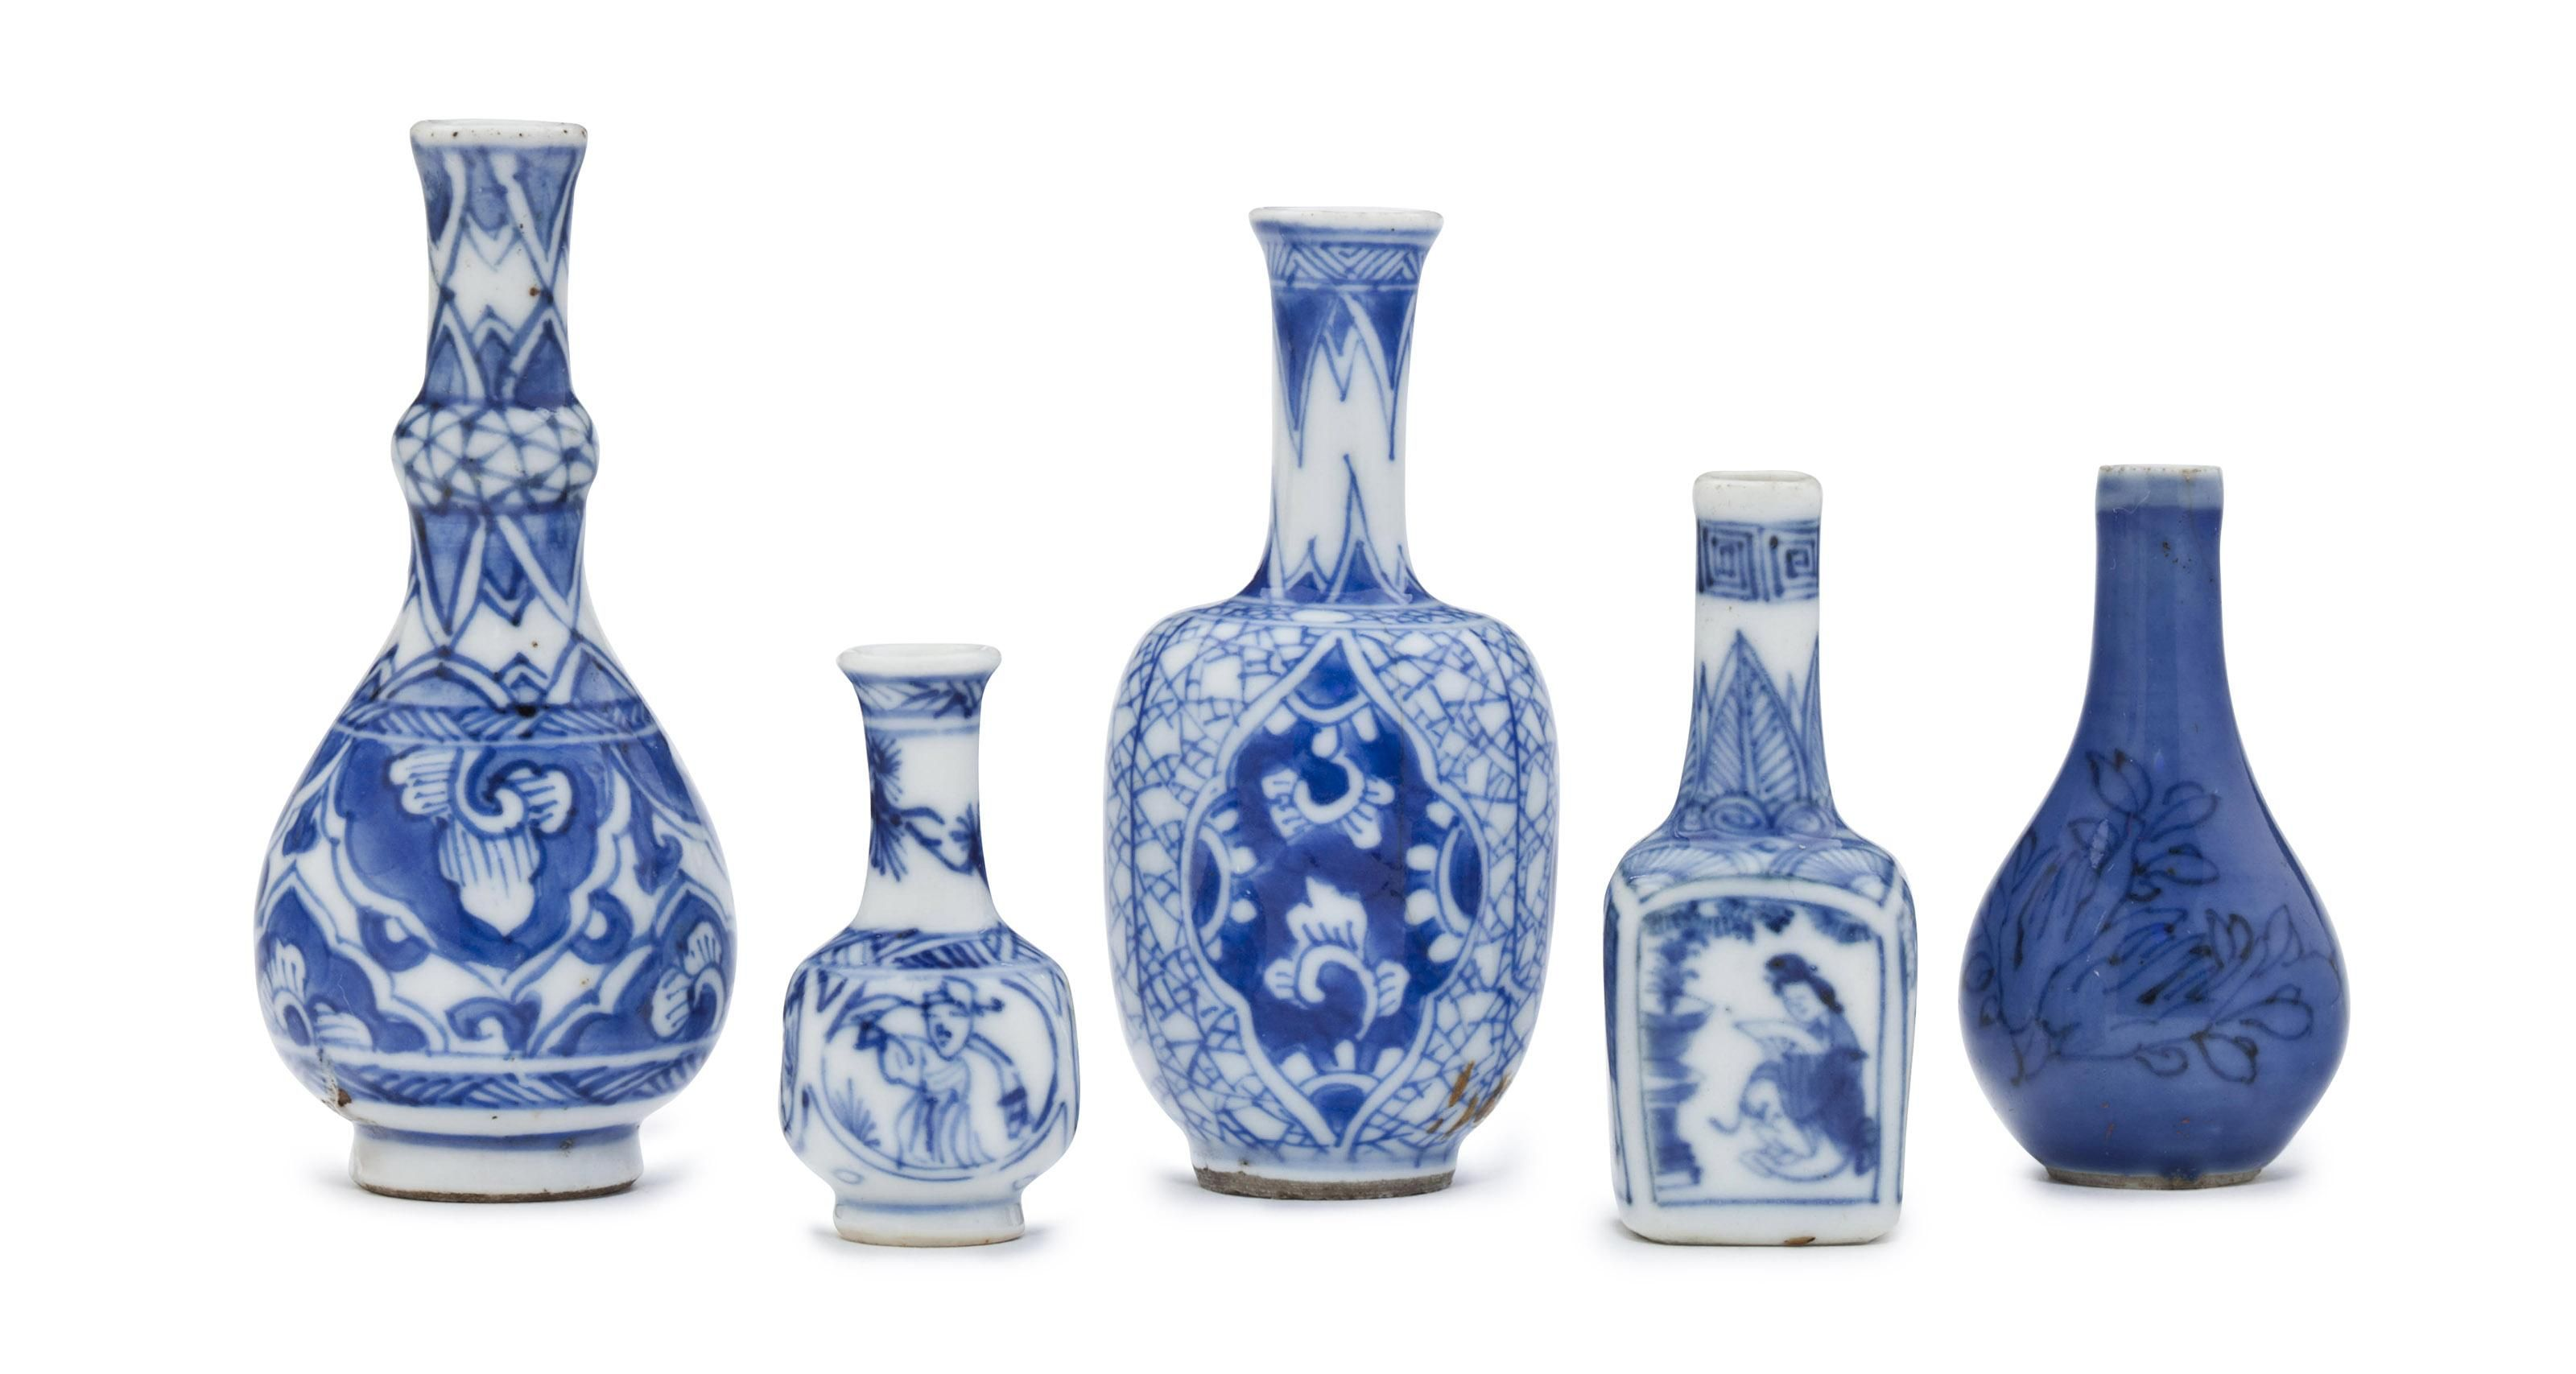 Four Miniature Blue And White Vases And A Miniature Blue Glazed Vase White Vases Blue And White Vase Blue And White Blue and white vases cheap